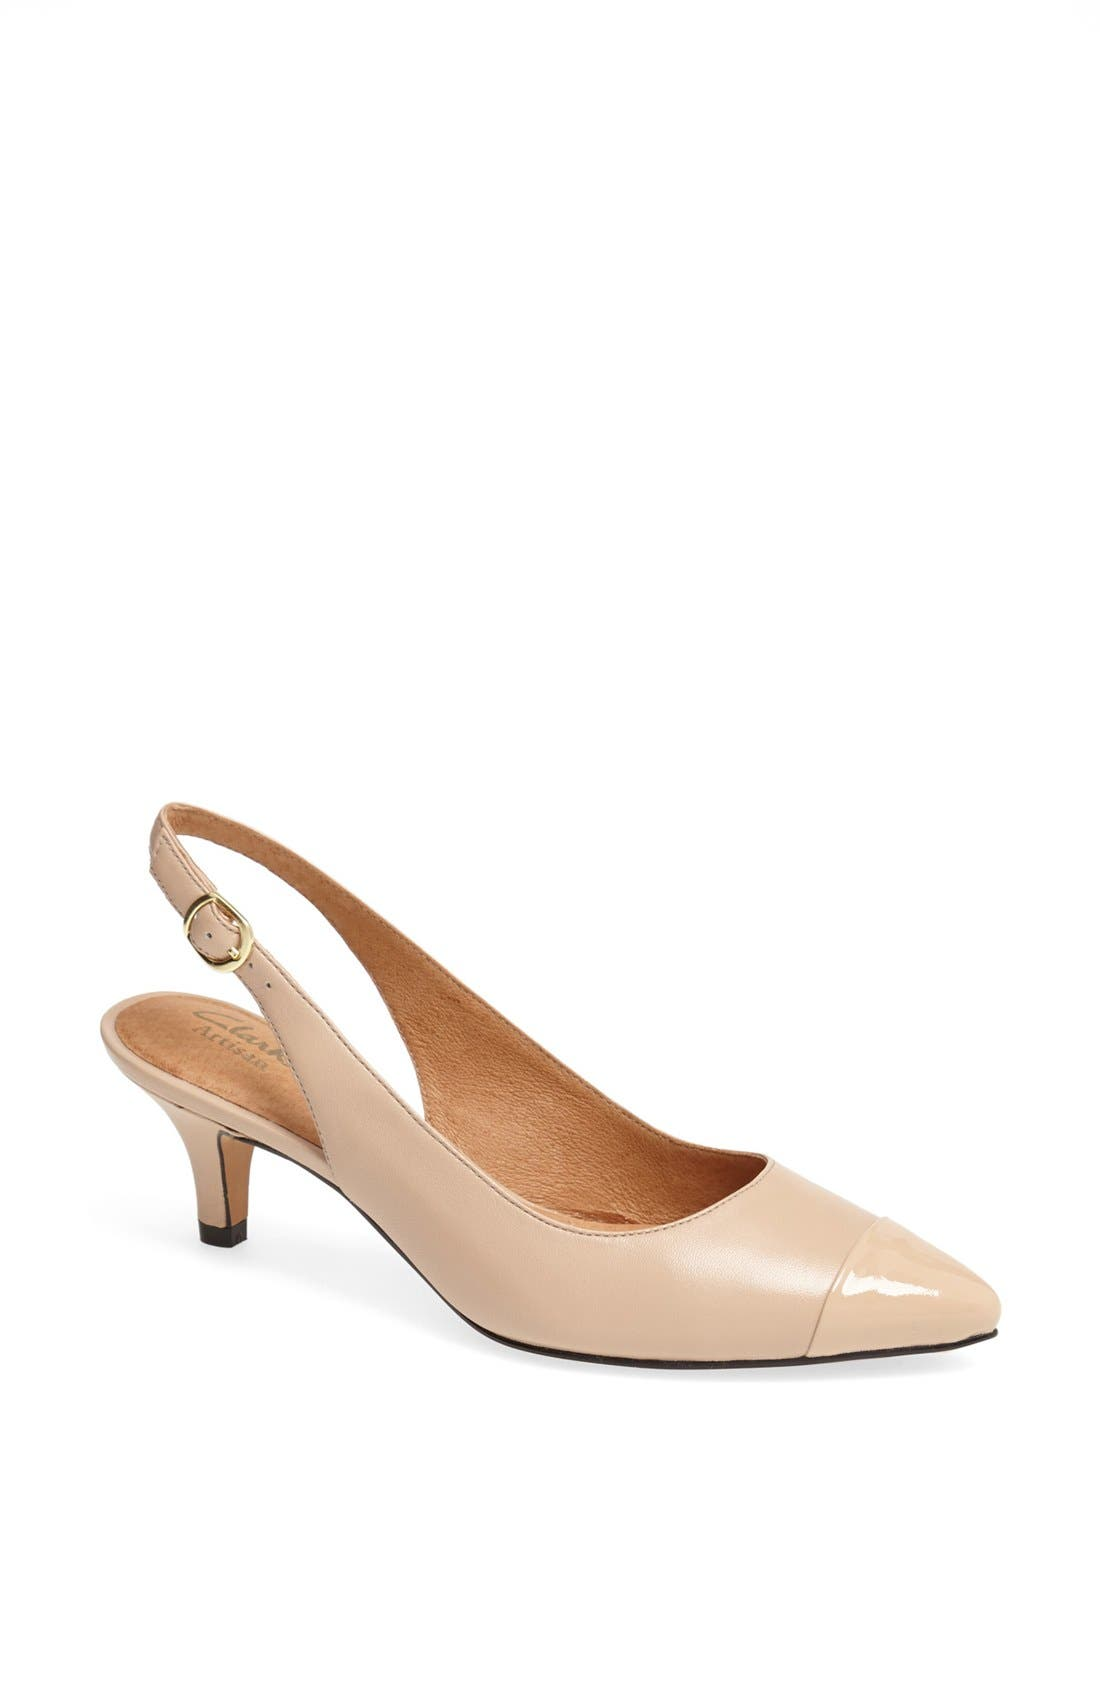 Alternate Image 1 Selected - Clarks® 'Sage Hallie' Slingback Pump